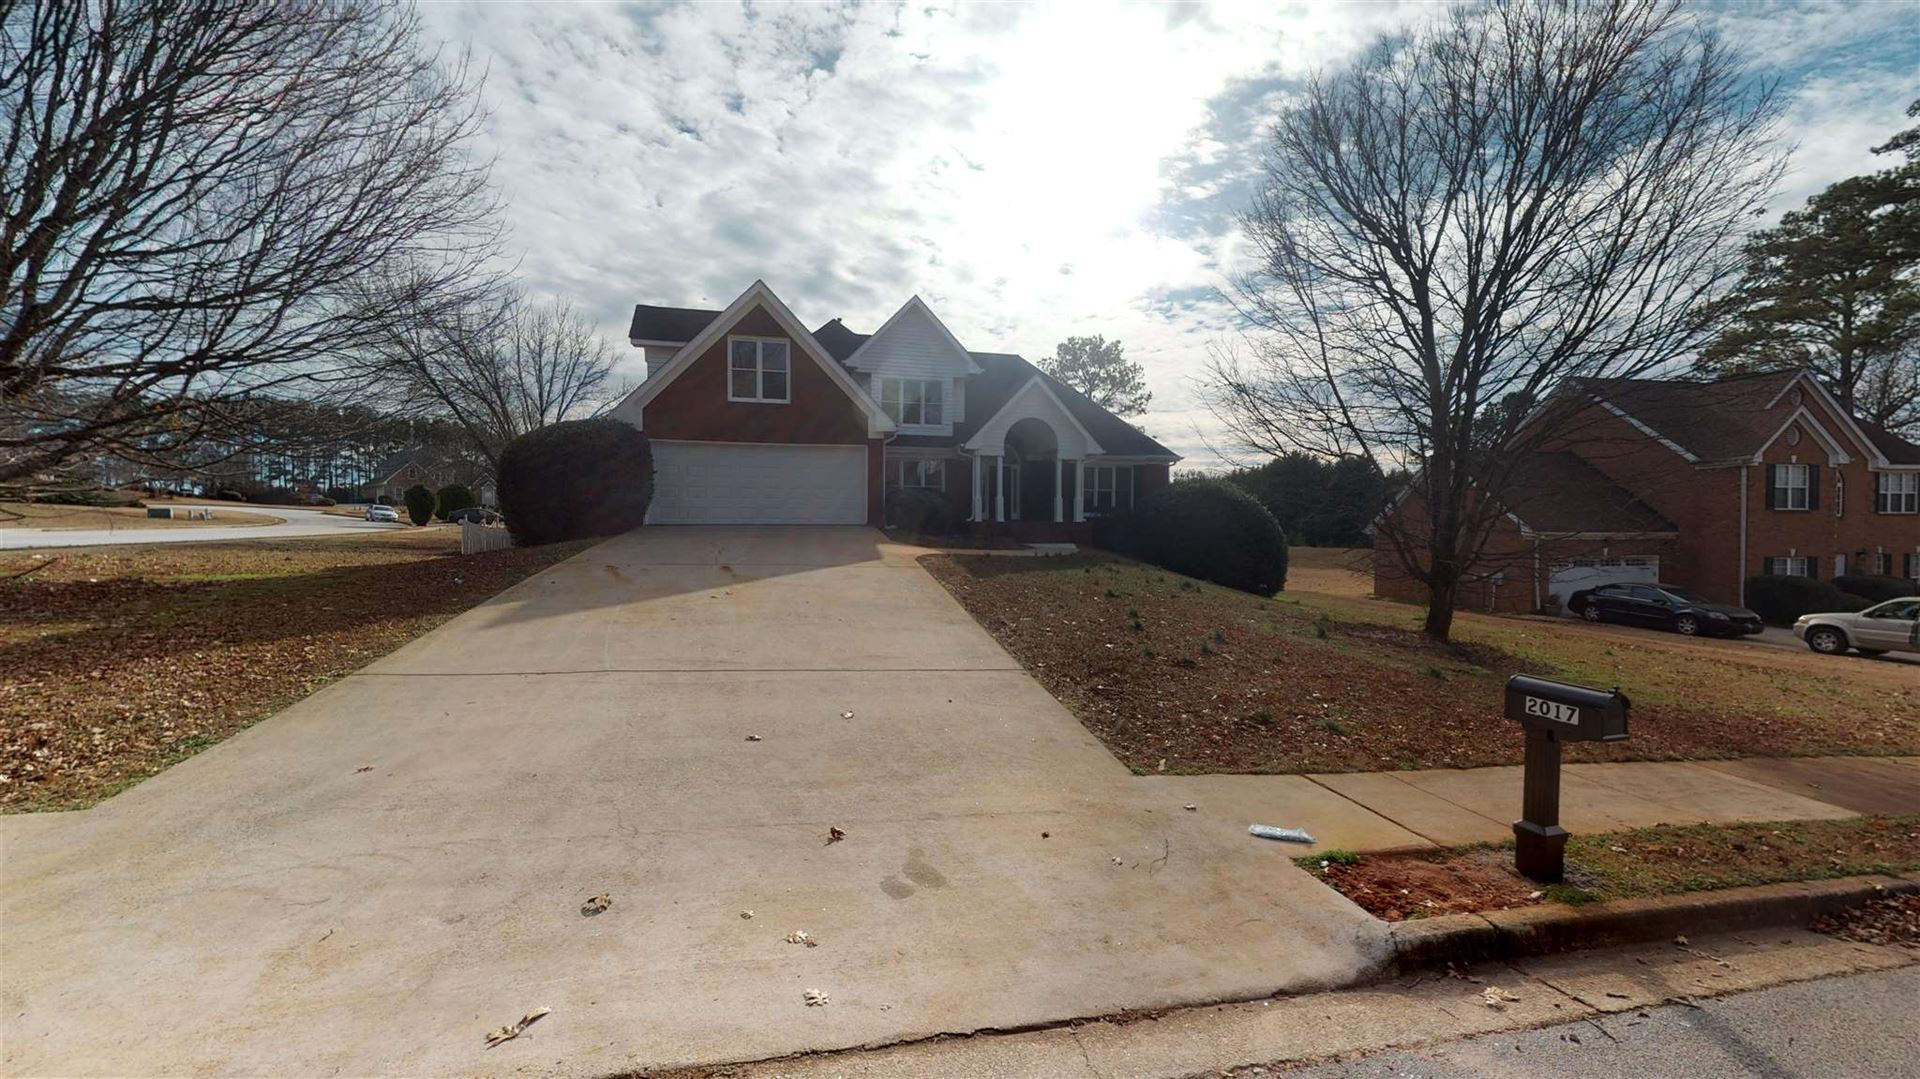 2017 Evergreen Dr, Conyers, GA 30013 - #: 8813651